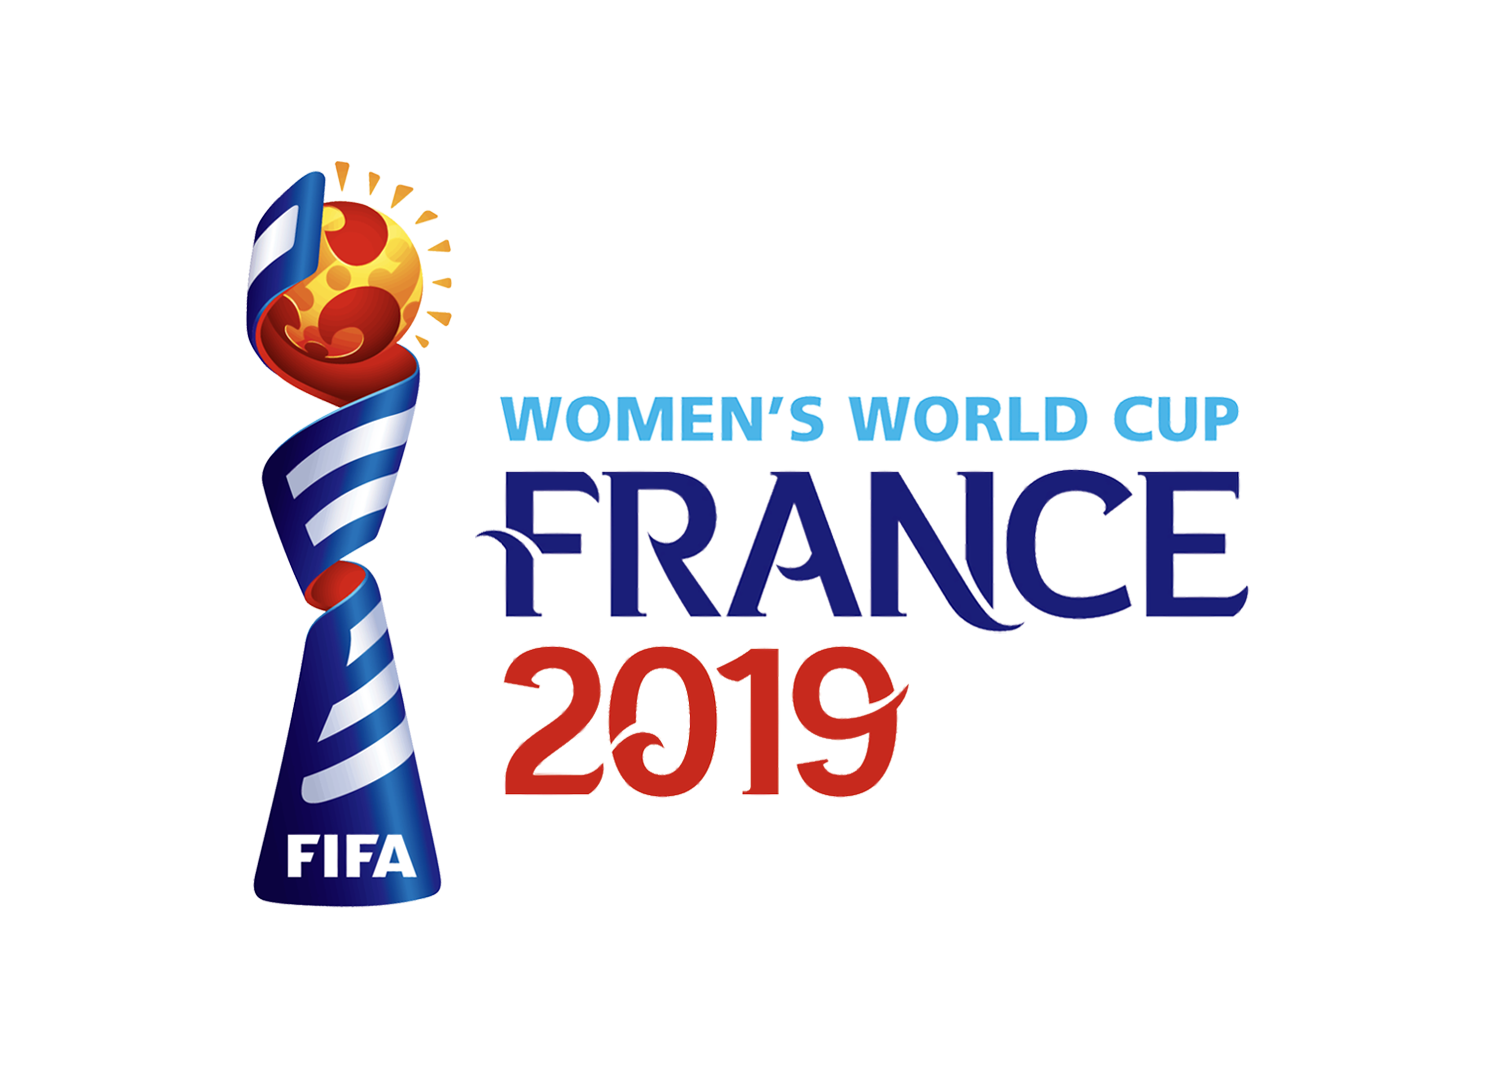 photo regarding Printable Olympics Tv Schedule named Womens Globe Cup Television Program 2019 - Sporting activities Media Keep an eye on